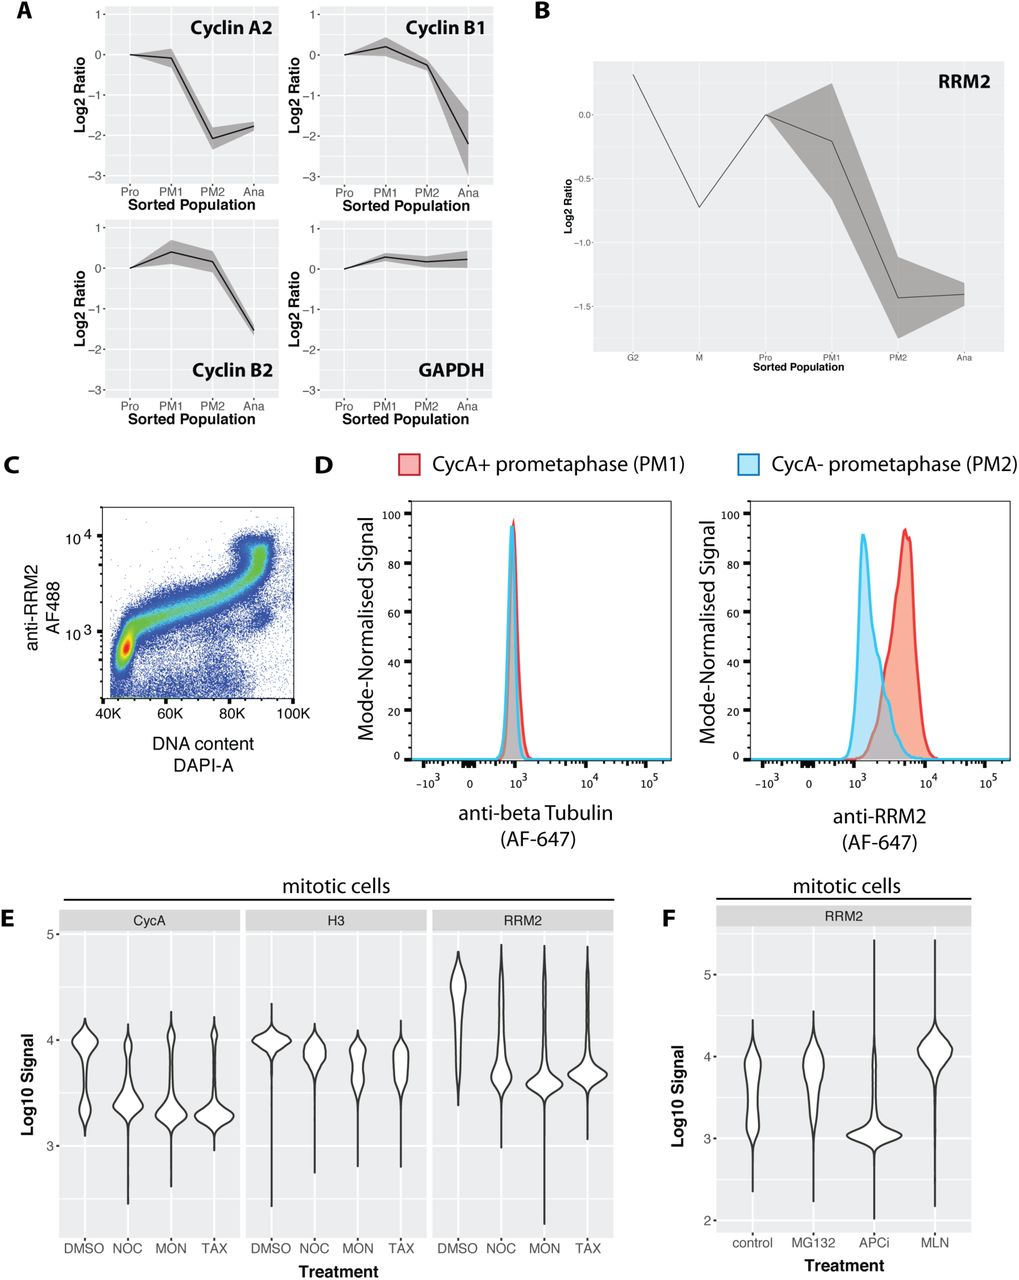 Proteomic analysis of cell cycle progression in asynchronous